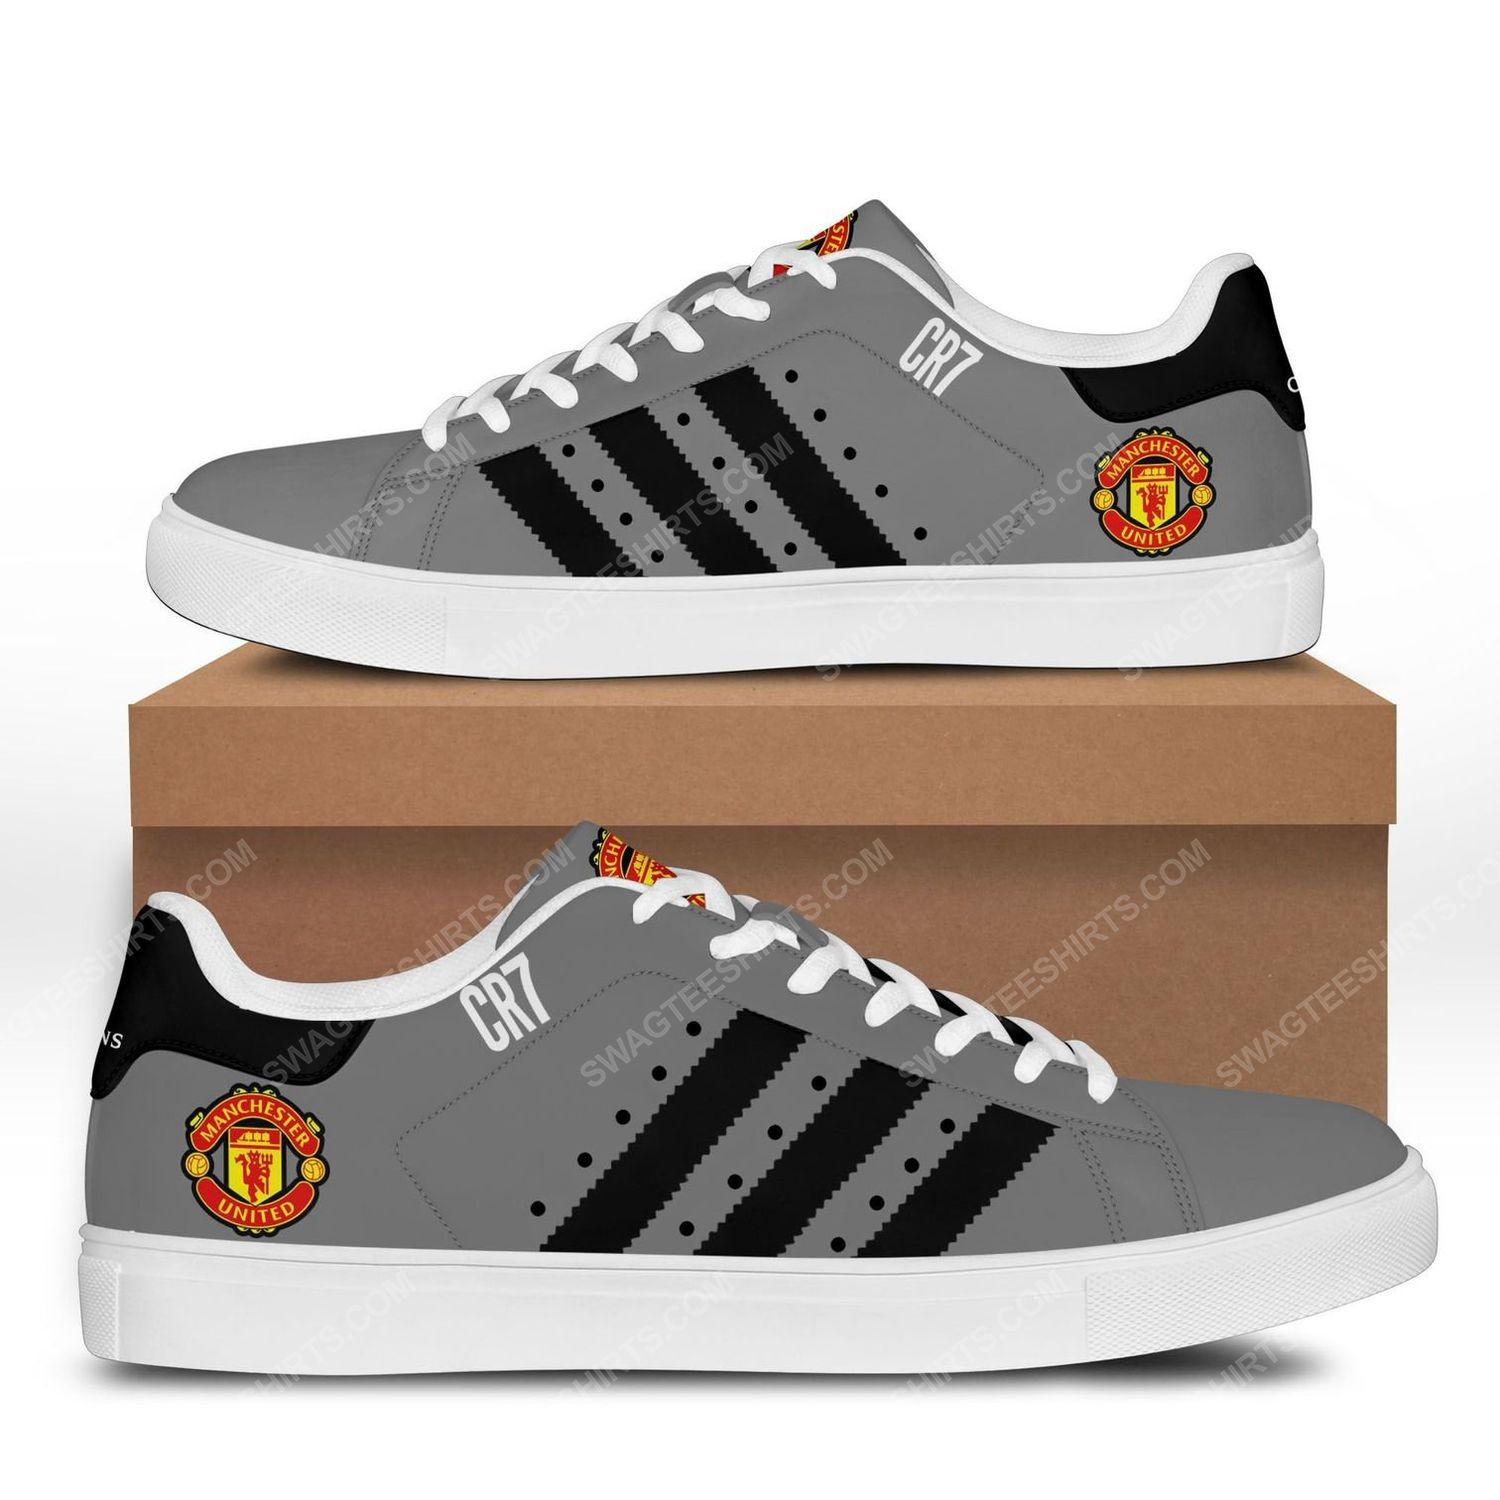 Manchester united football club stan smith shoes 3